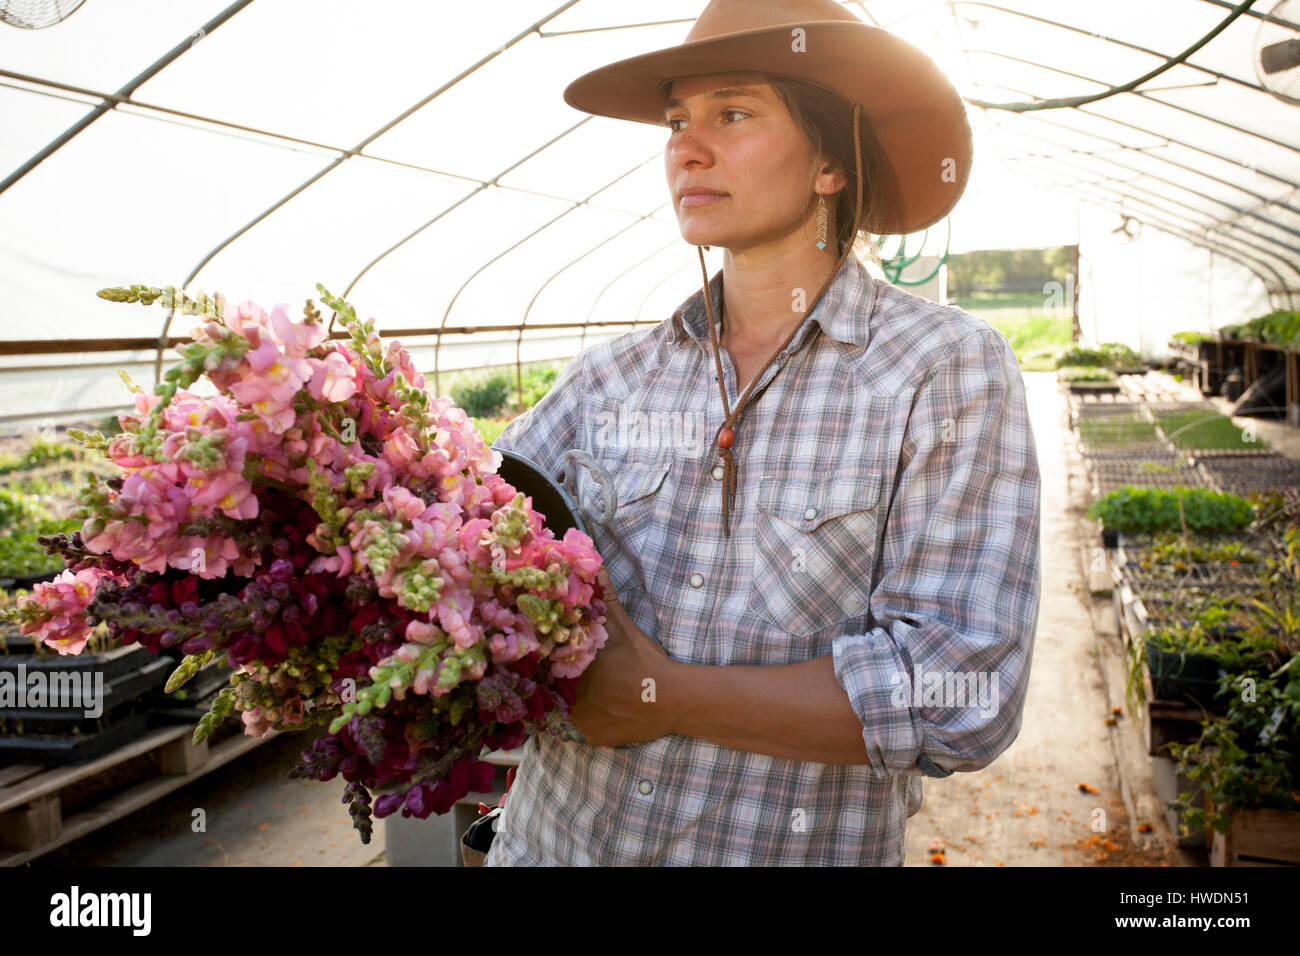 Young woman holding bucket of snapdragons (antirrhinum) in flower farm poly tunnel Stock Photo